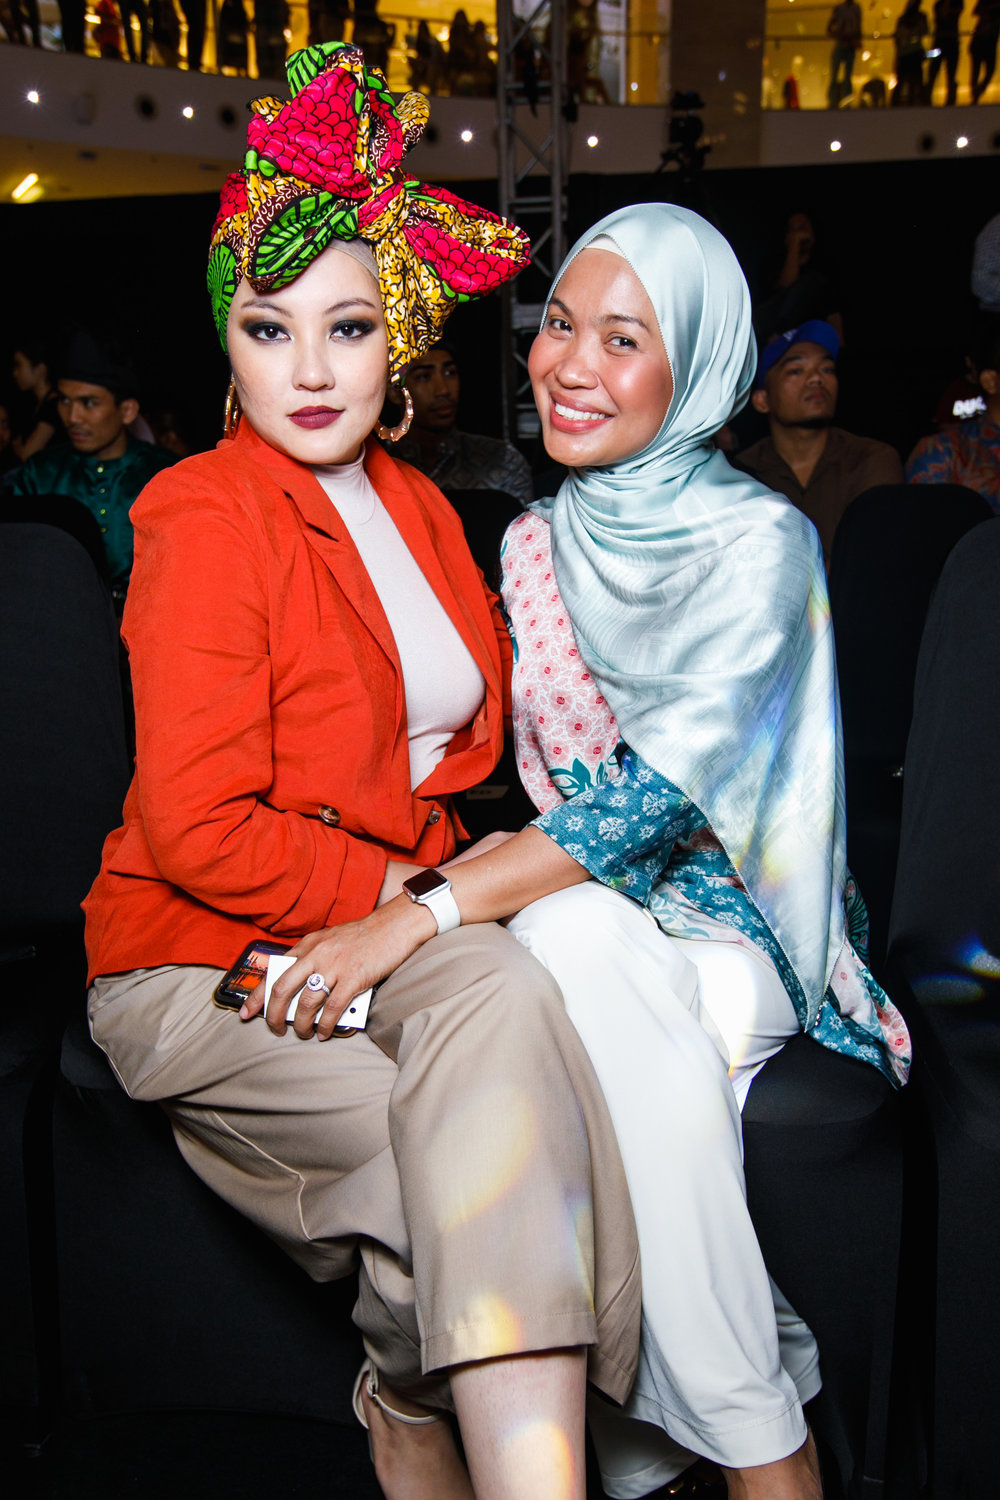 KLFW2018 - Day 1 - 0_042217 - Photo By All Is Amazing.JPG